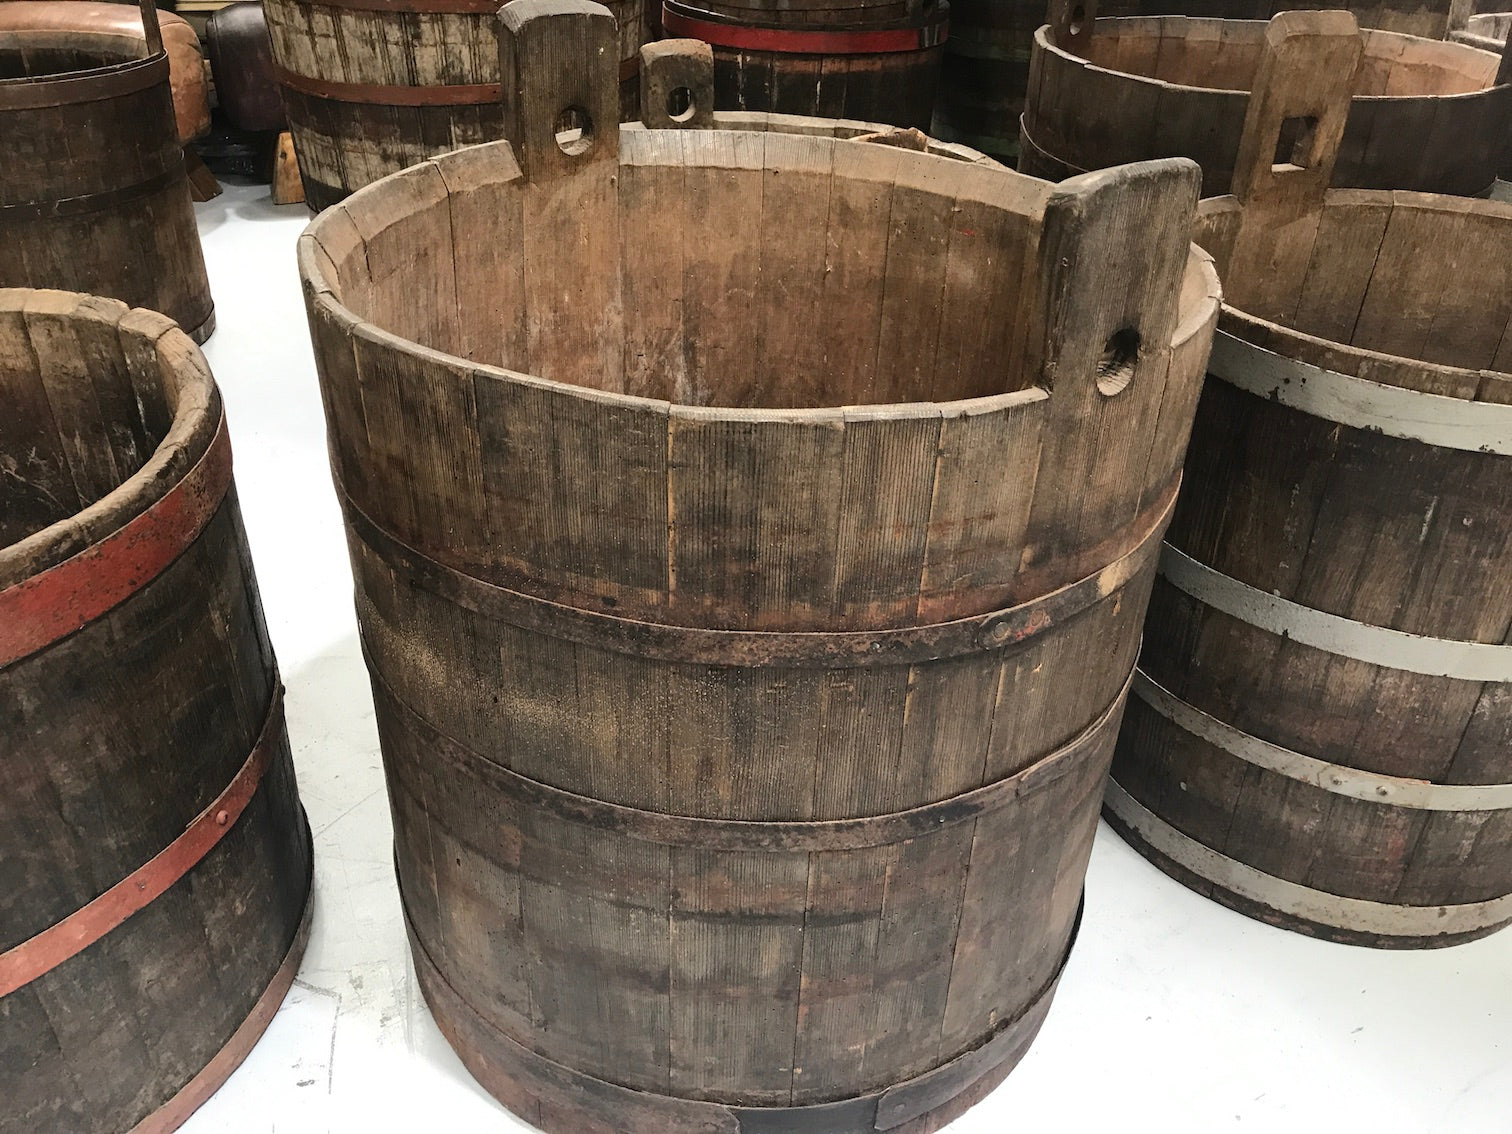 Vintage industrial French oak round wine barrel #1986/4